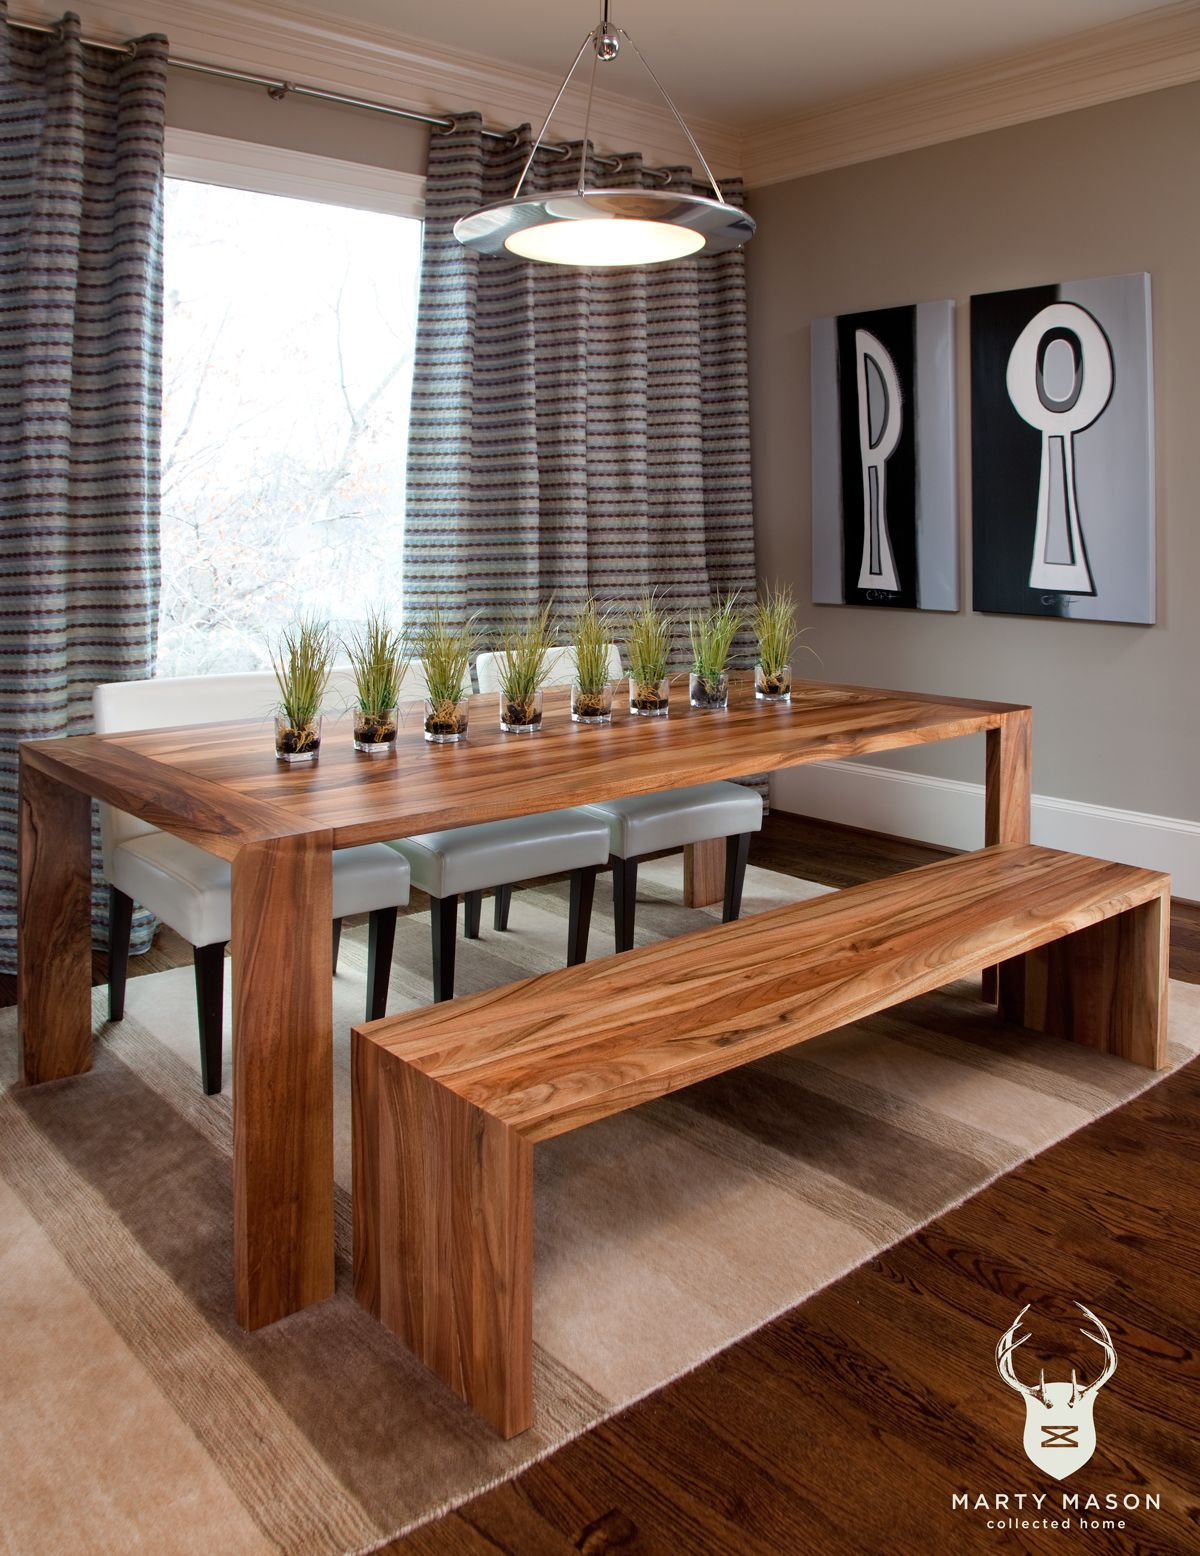 diy dining table and bench plans wooden pdf woodworkers network rh pinterest com